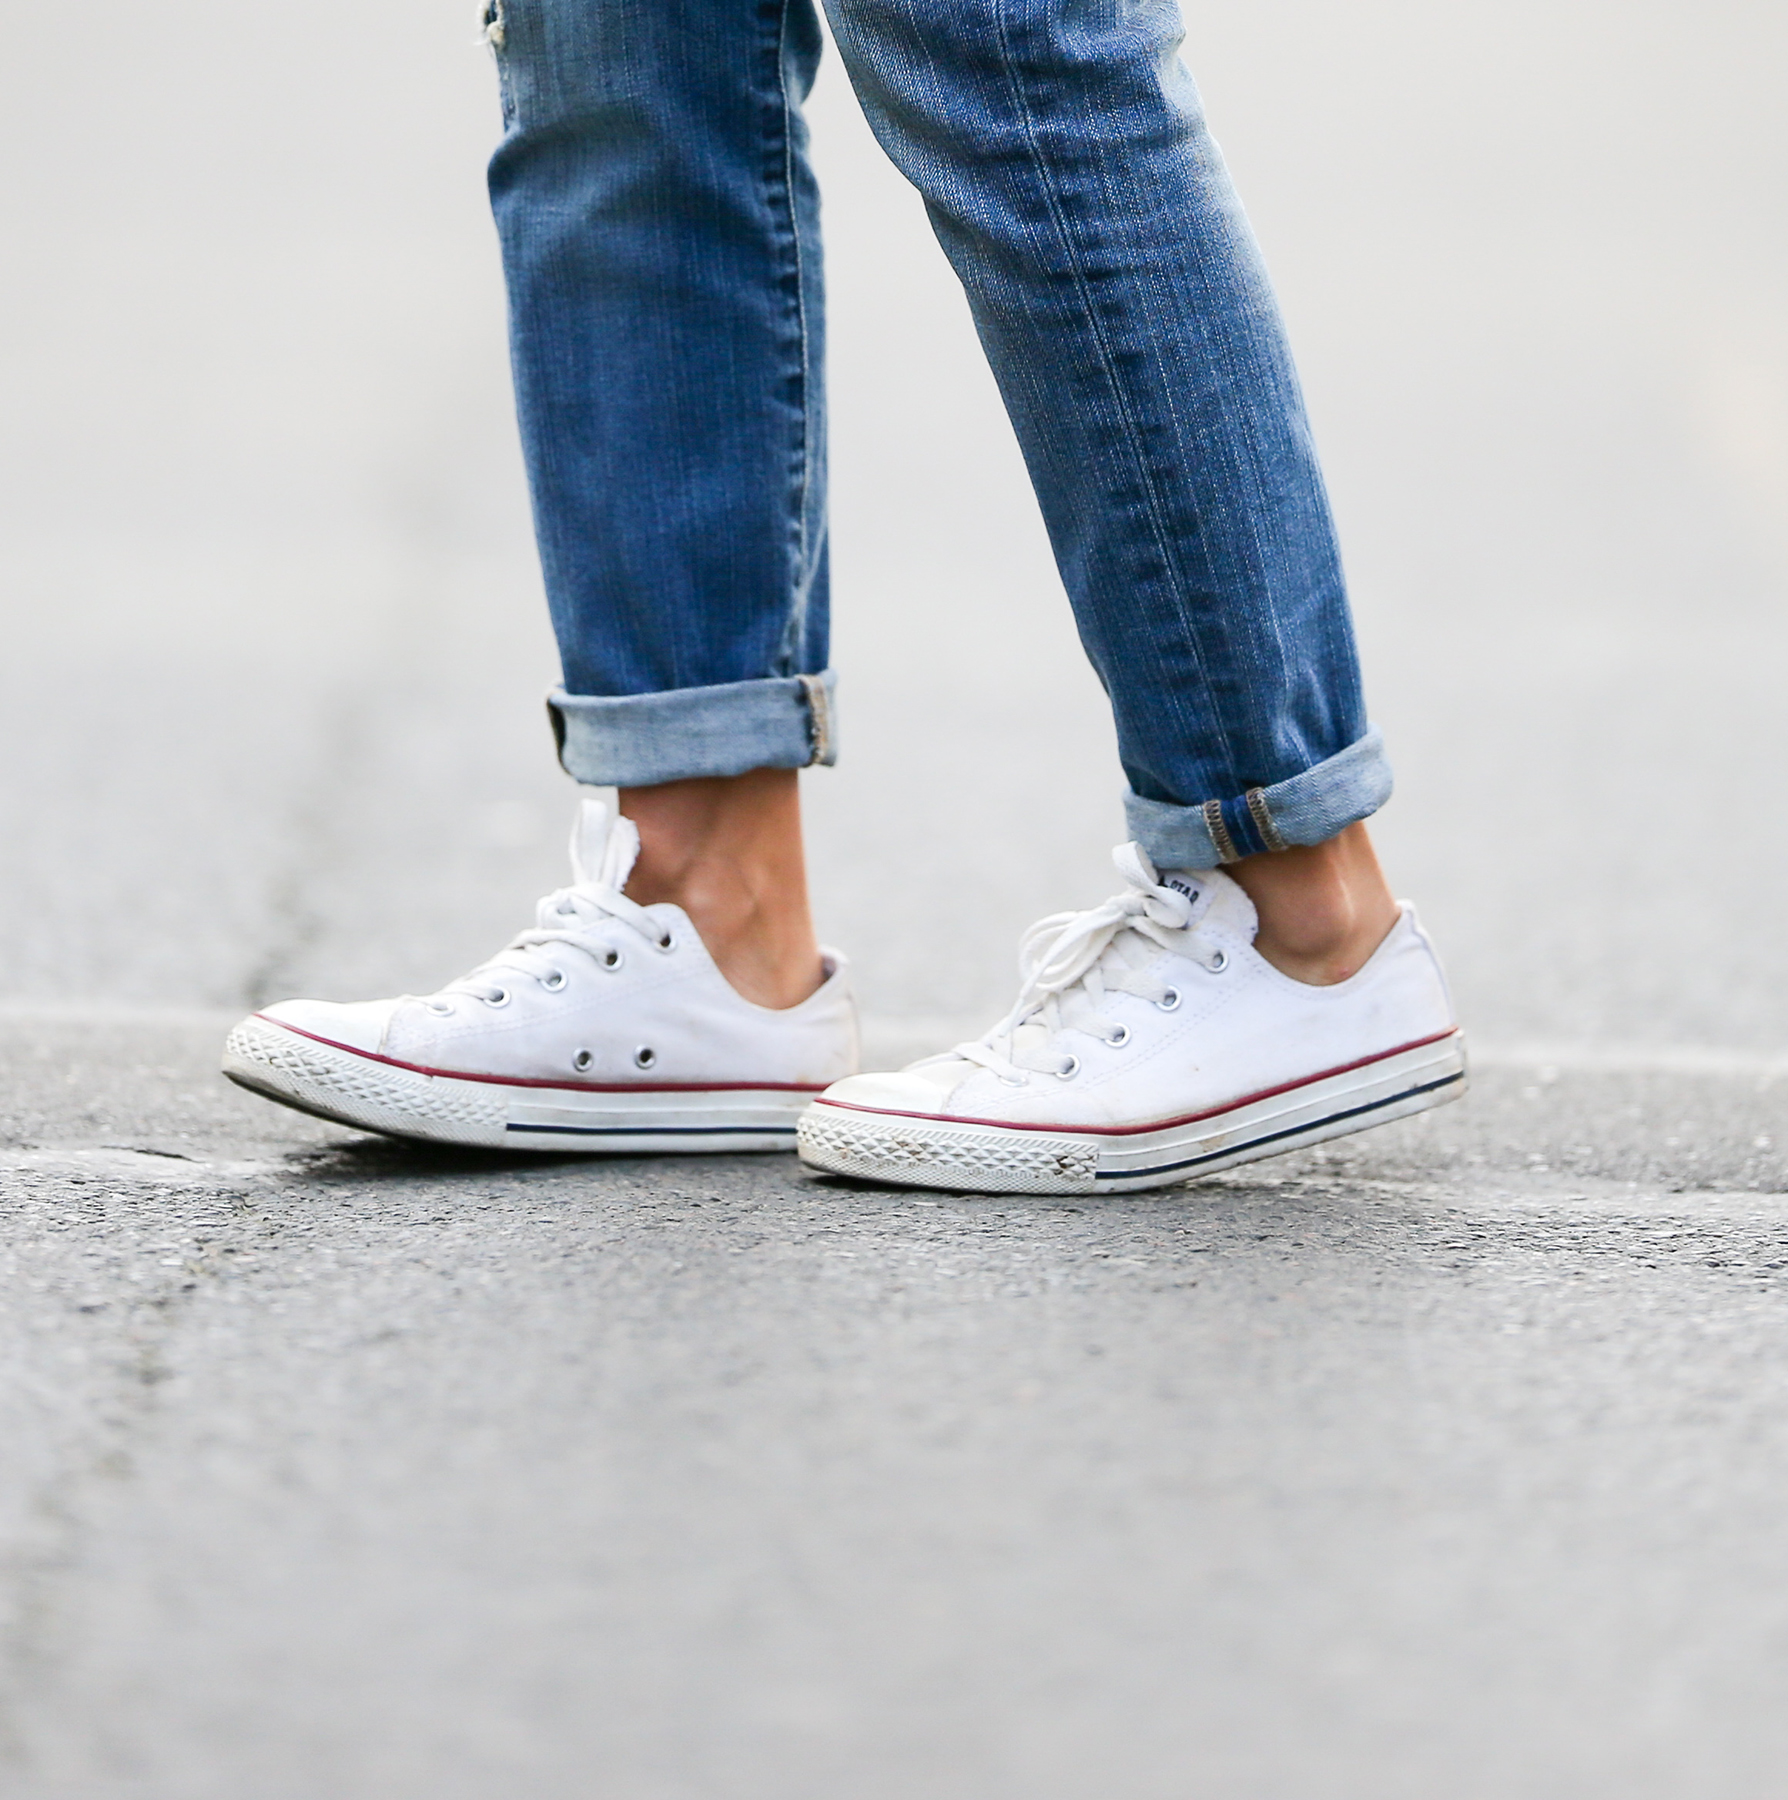 Jeans and white Converse